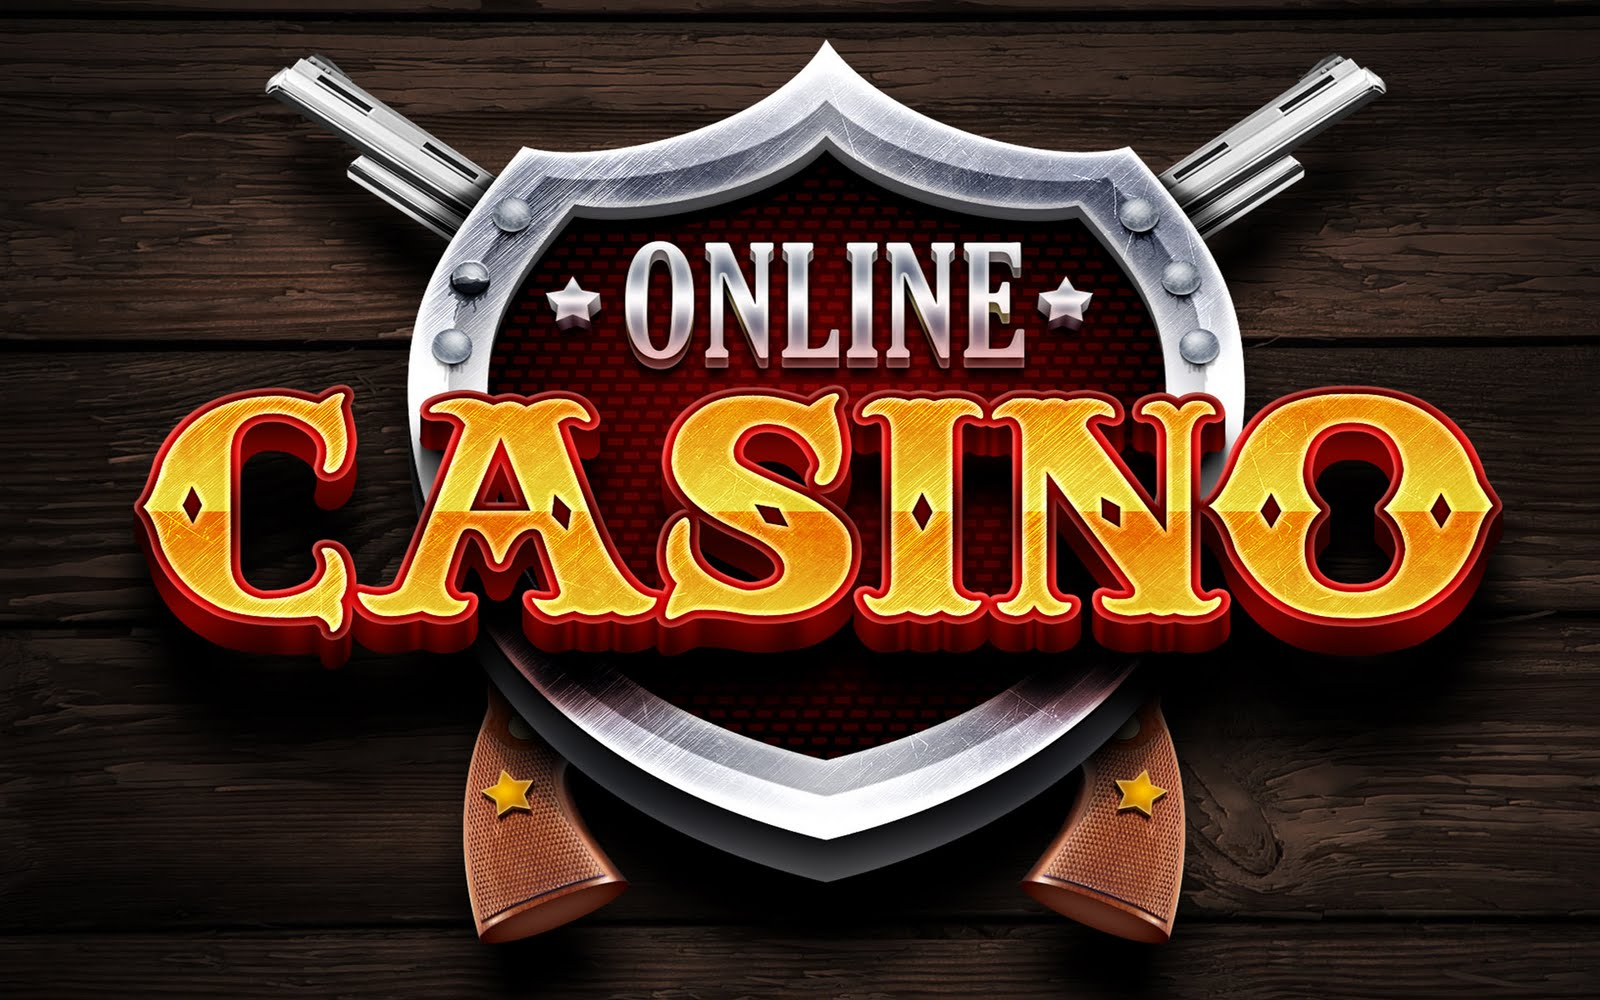 Enjoyable-and-secure-online-casinos-for-your-gaming-pleasure Petunjuk Agen Poker game Asli